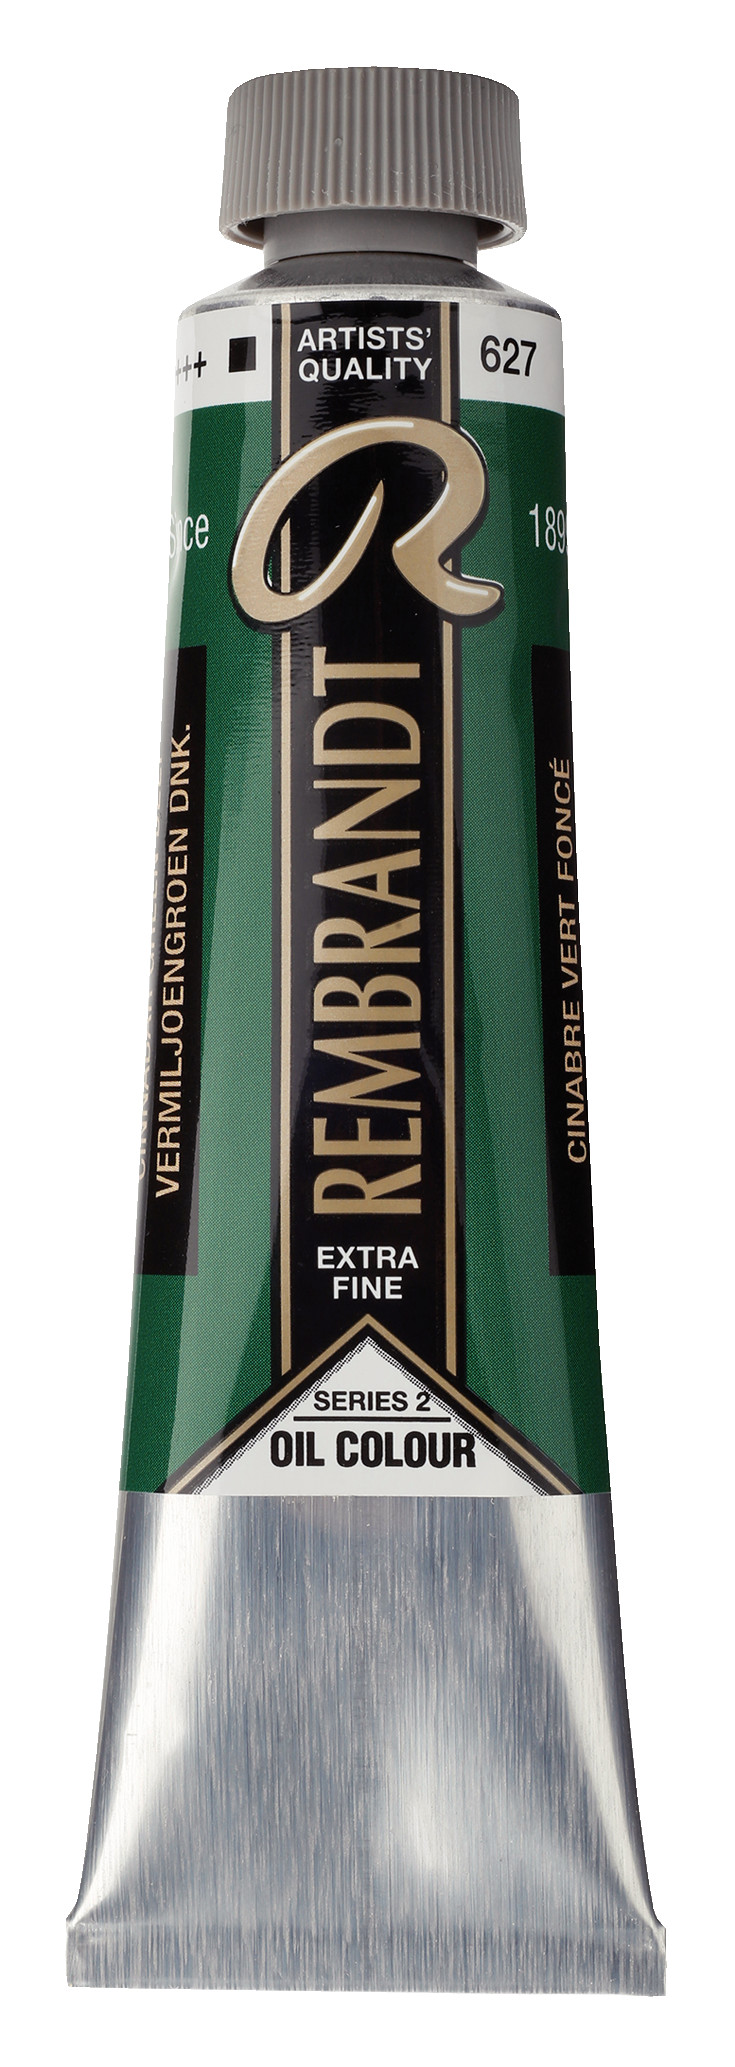 Rembrandt Oil colour Paint Cinnabar Green Deep (627) 40ml Tube